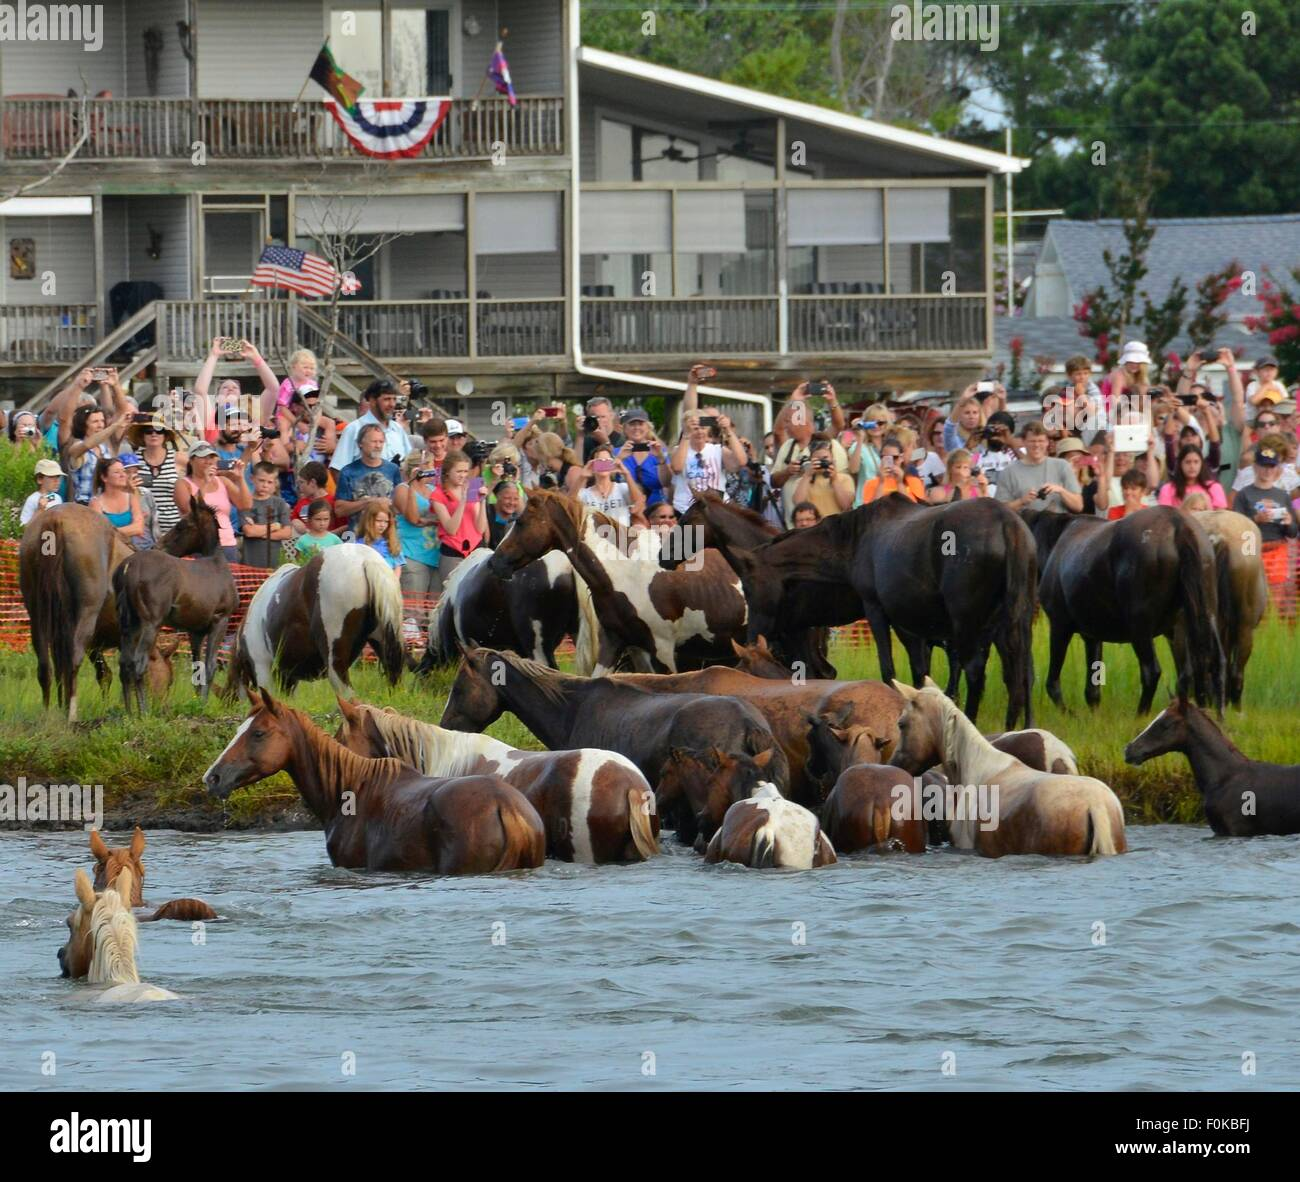 Wild ponies come ashore during the 90th annual Pony Swim from Assateague Island on Virginia's Eastern Shore July Stock Photo